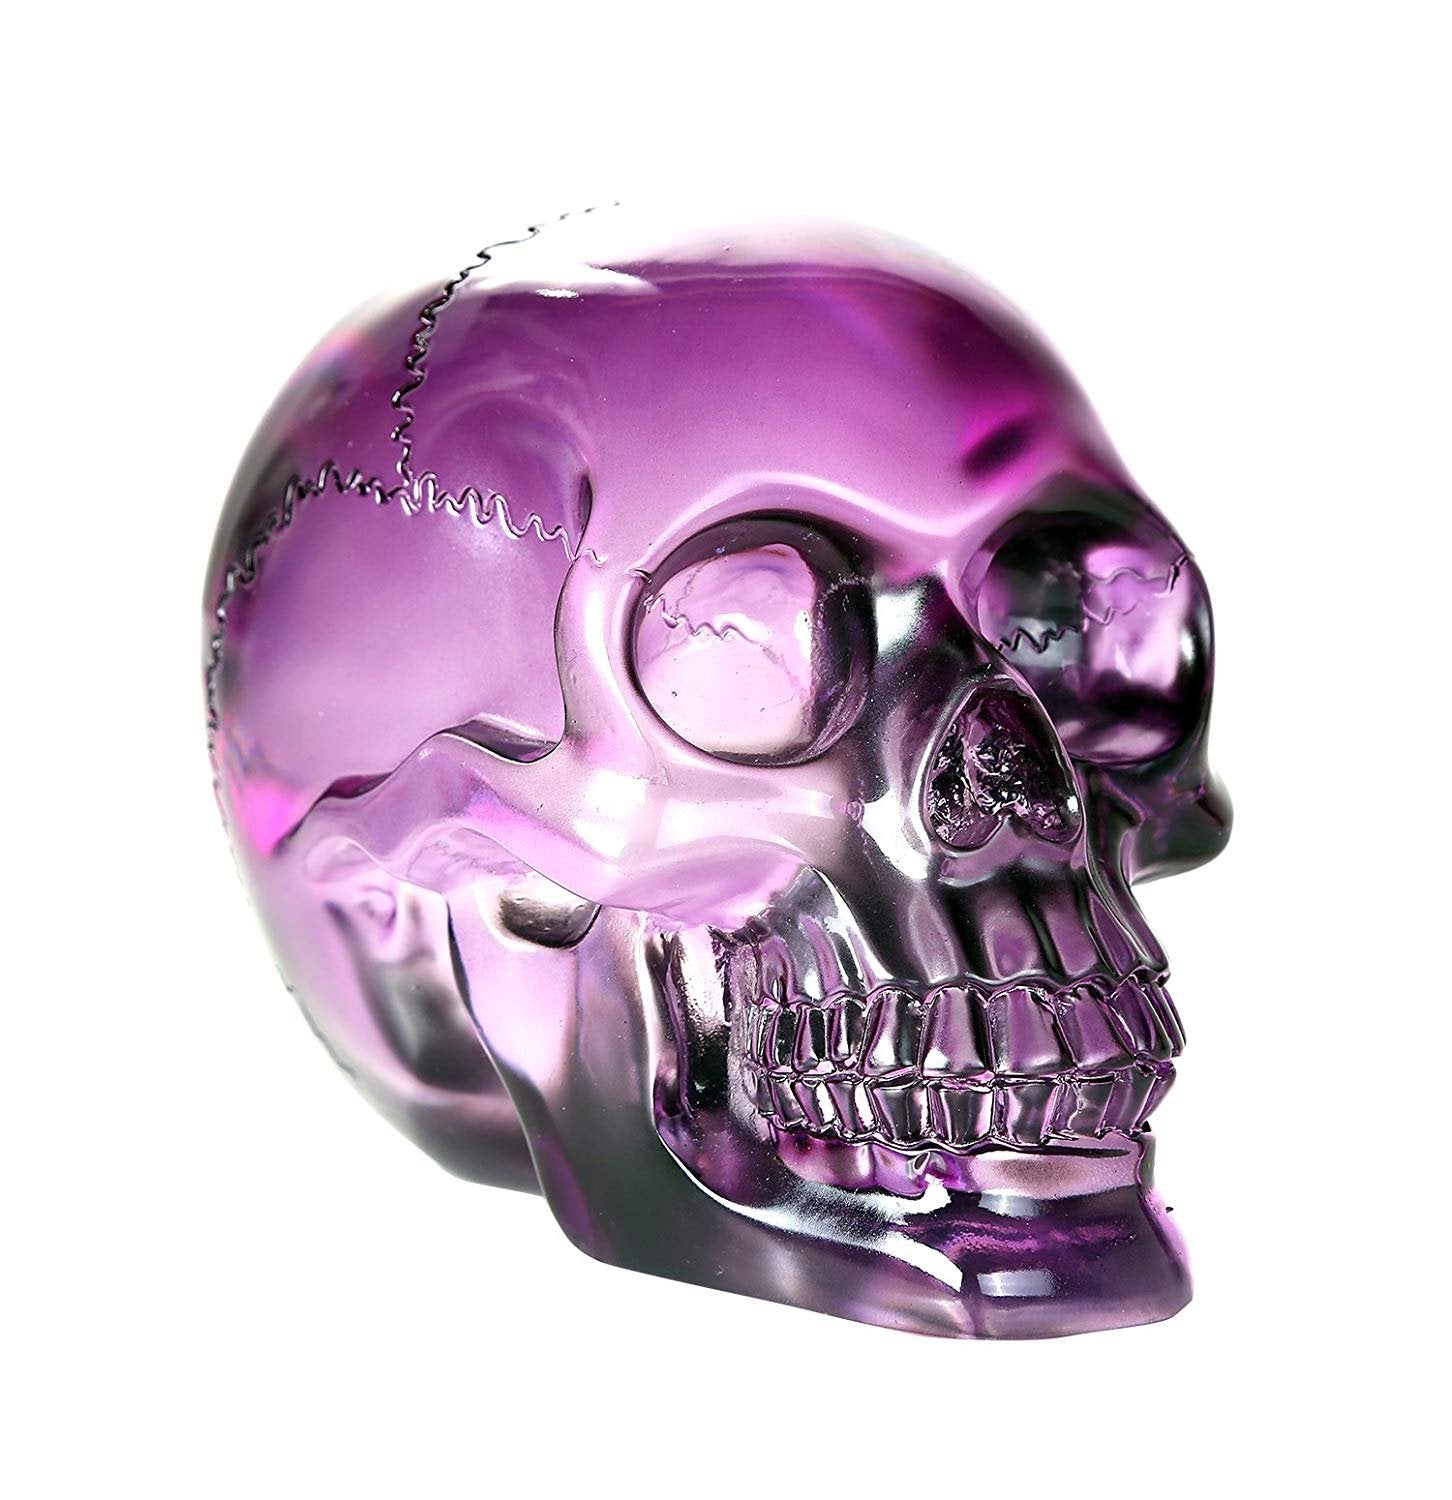 Pacific Giftware Crystal Clear Translucent Skull Collectible Figurine 4.5 Inch